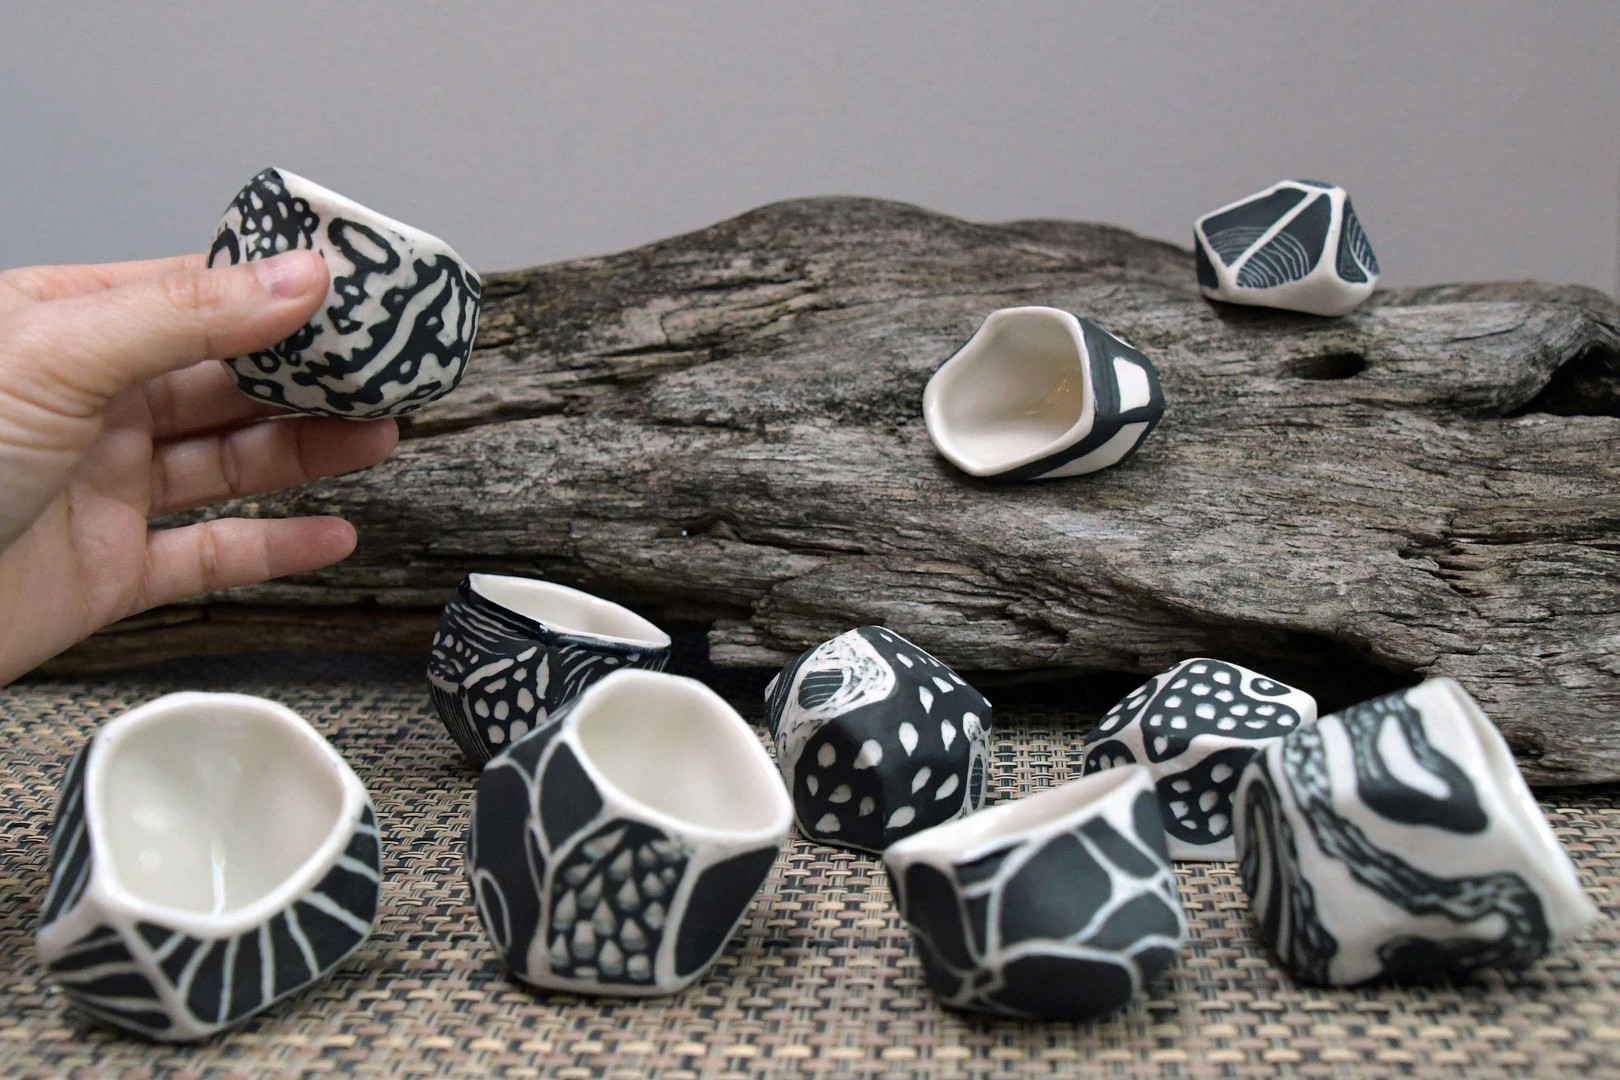 "Ruth Borgenicht ""Collaboration with Wendy Letven: Tea Cups"" 2020 - ongoing, porcelain, 1"" - 2"" high."